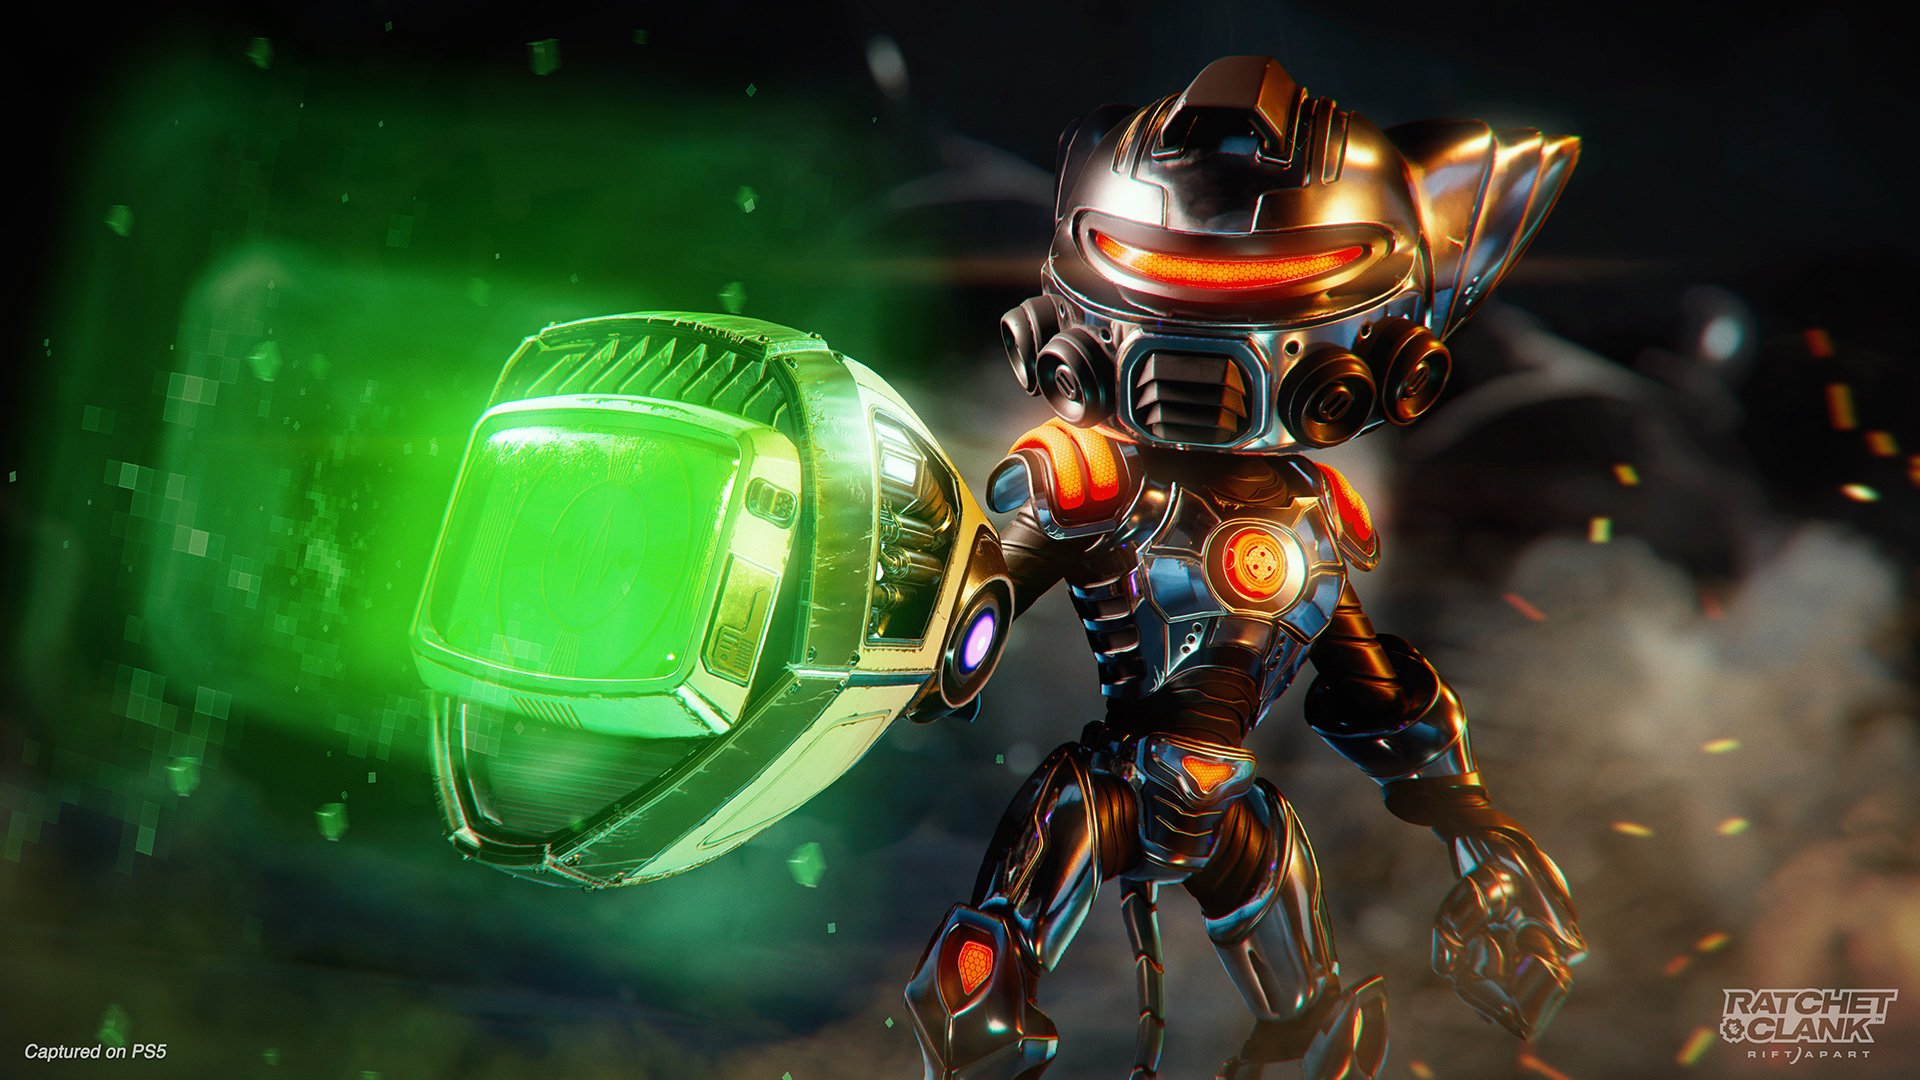 Ratchet & Clank: Rift Apart is out June 11 and there are a couple of 'early unlocks' screenshot